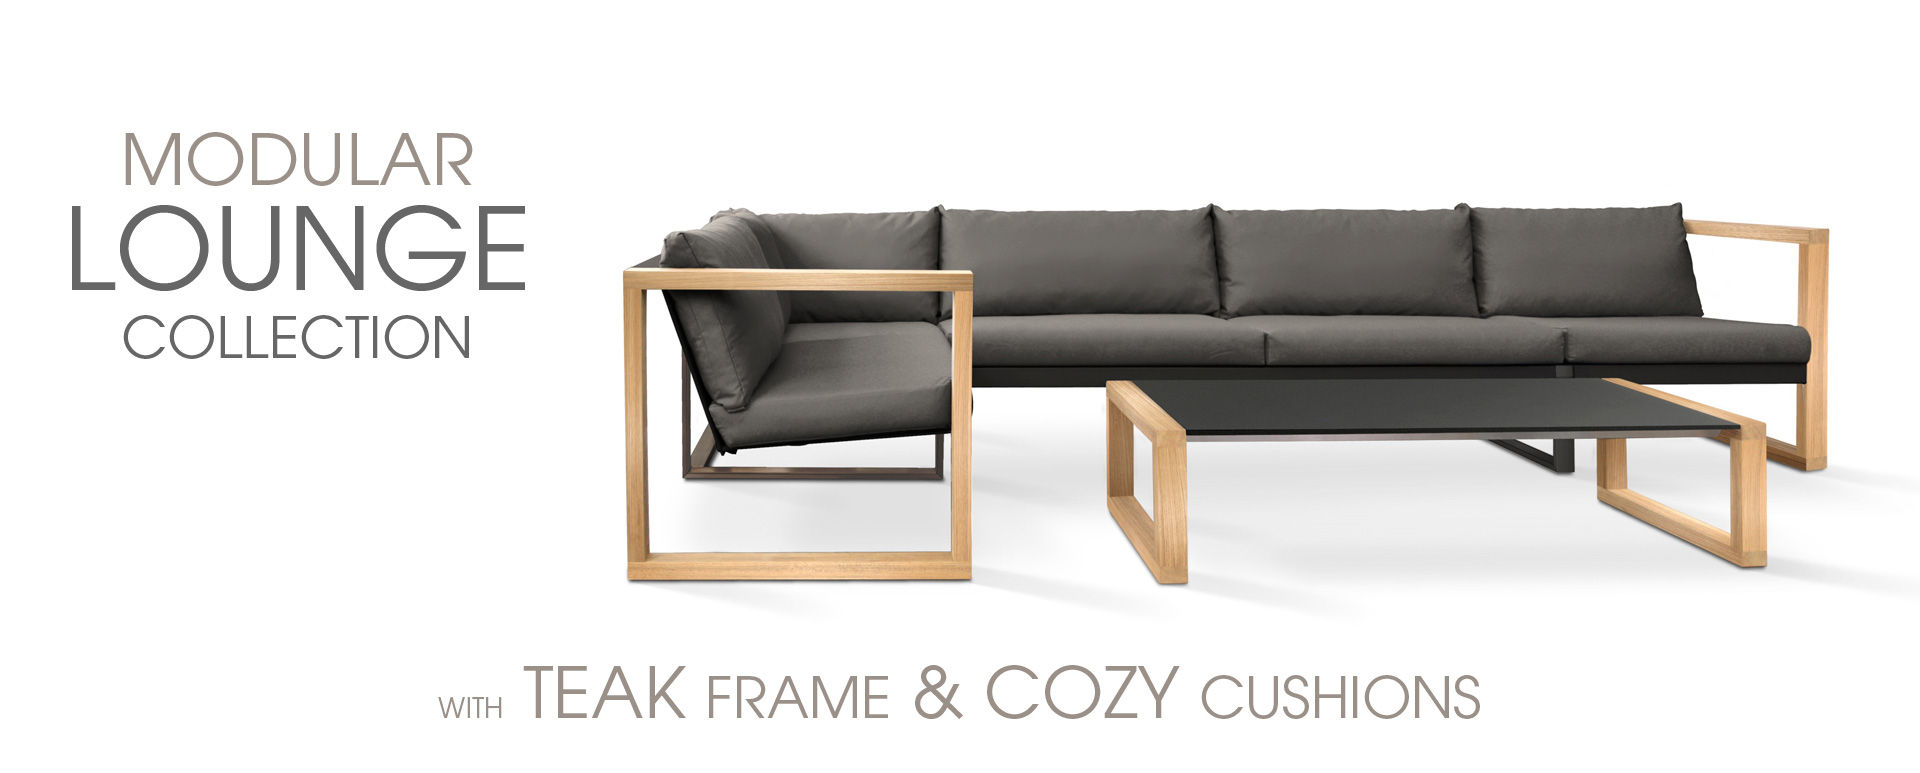 Modular Lounge set with teak frame & cozy cushions